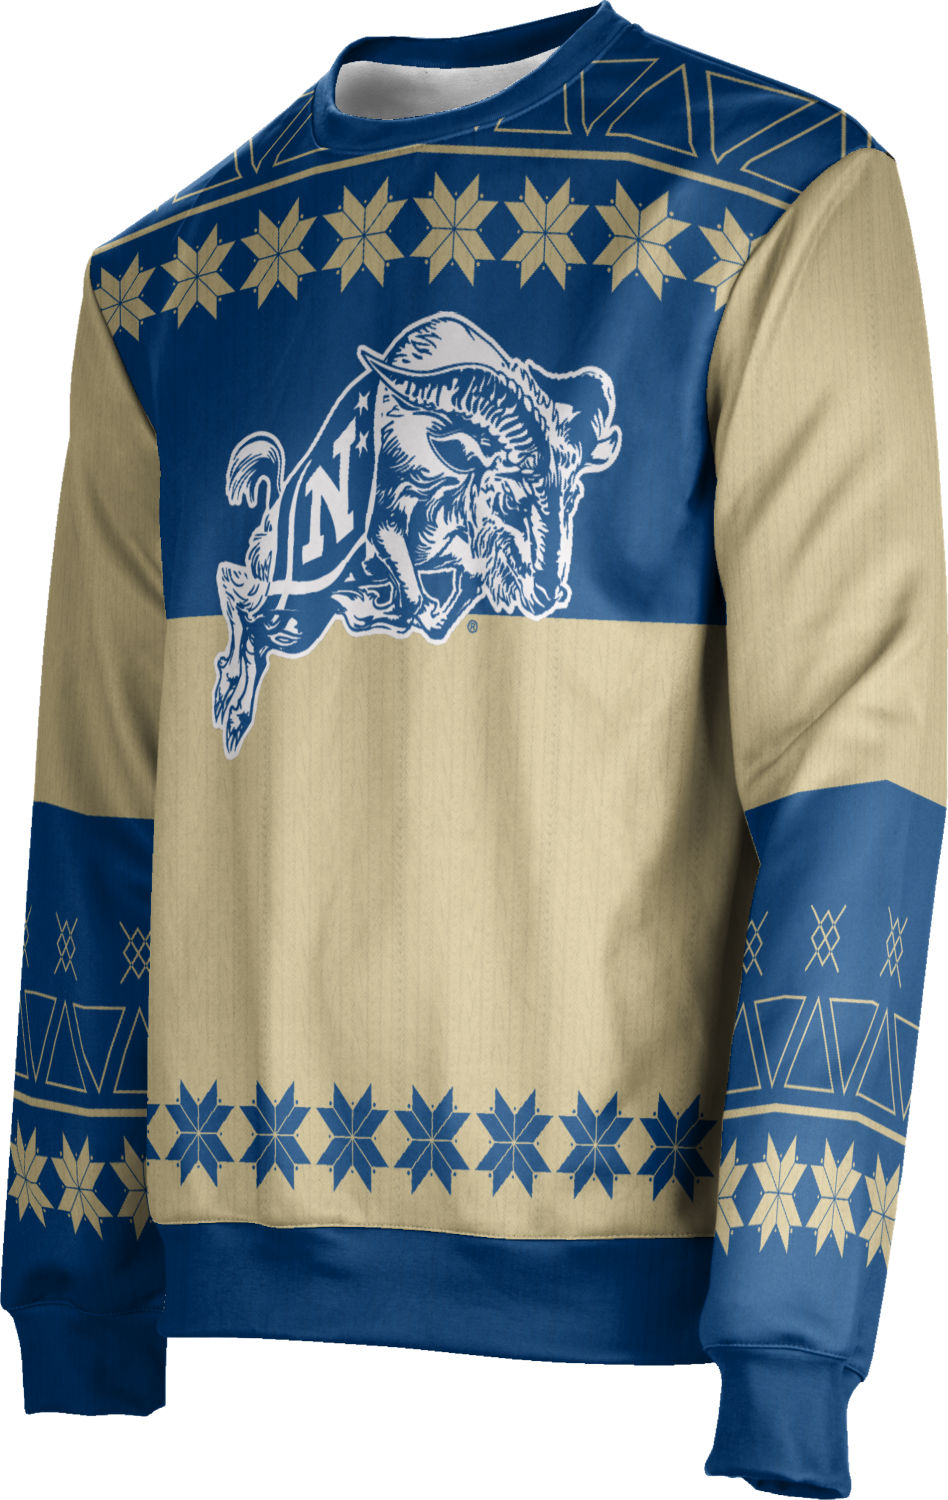 Apparel Men/'s United States Naval Academy Ugly Holiday Wrapping Paper Sweater